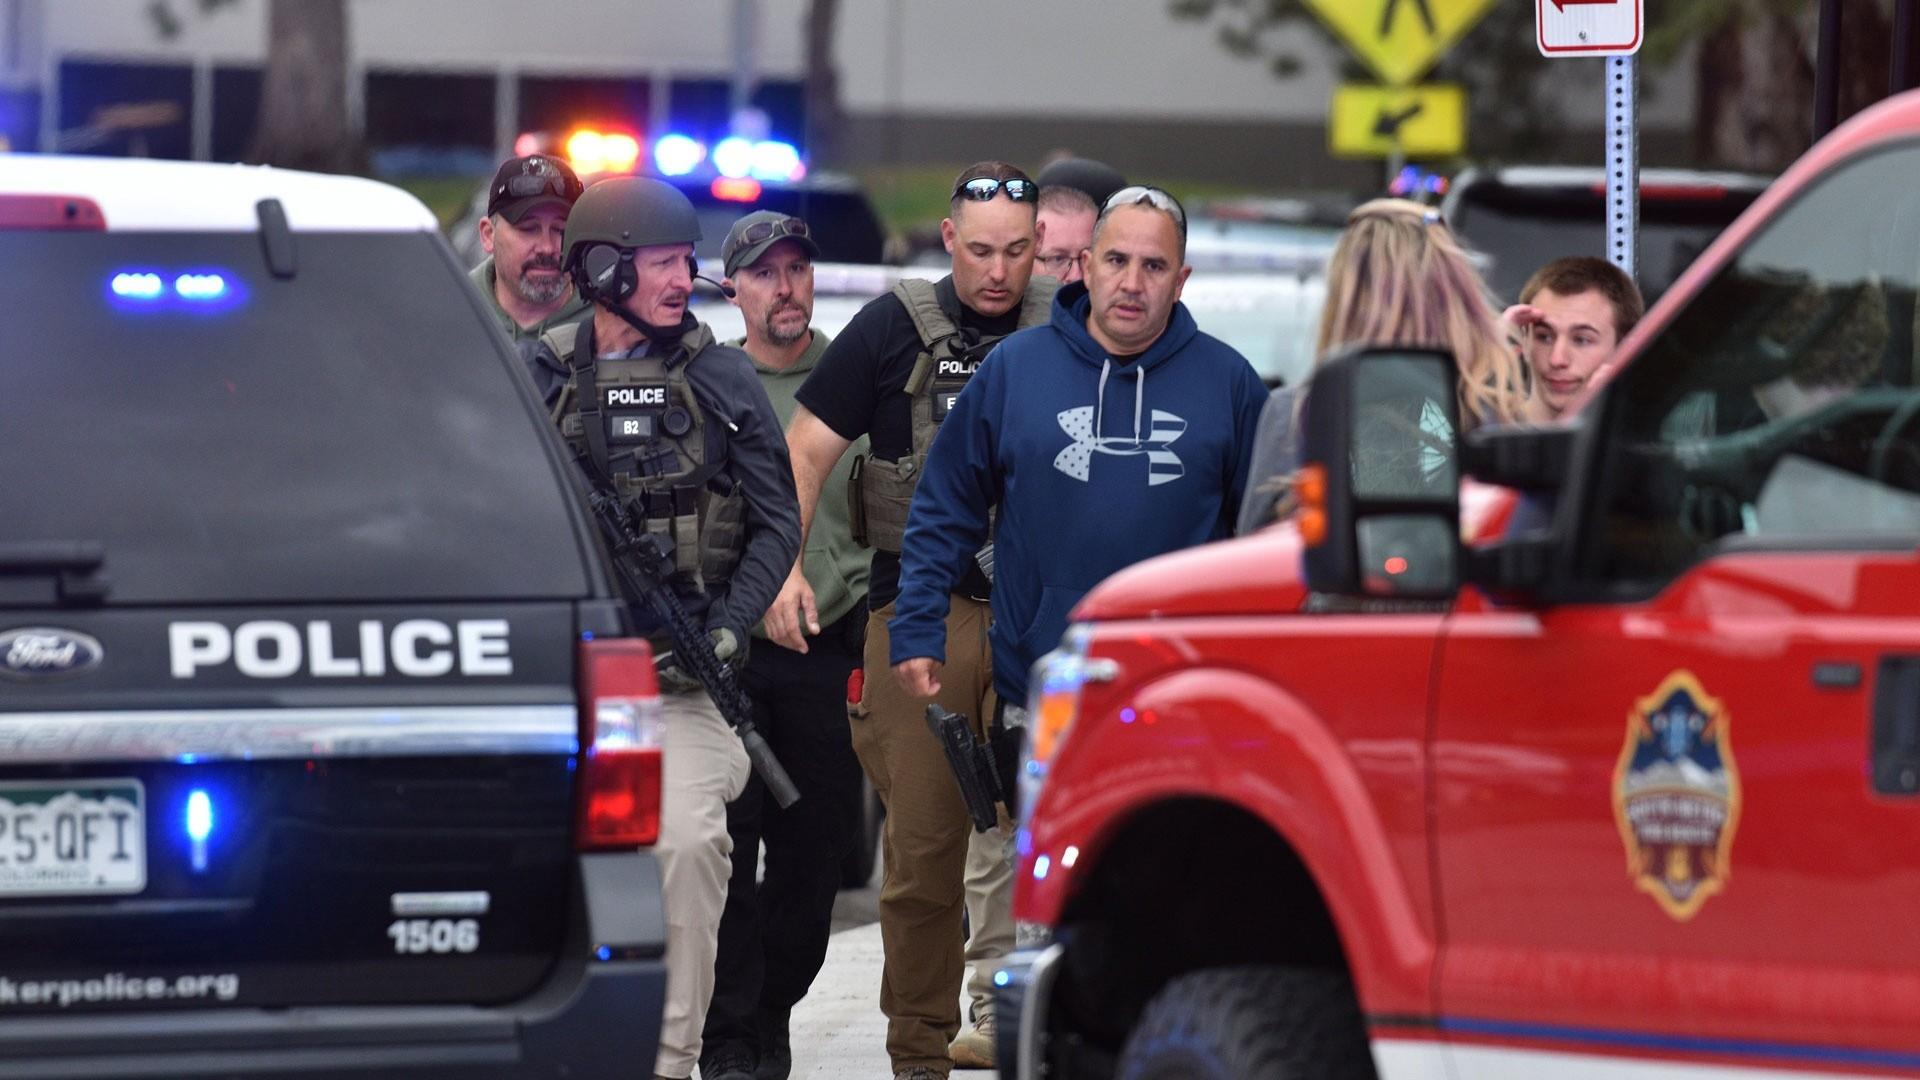 Authorities say the second suspect in Colorado shooting was a female